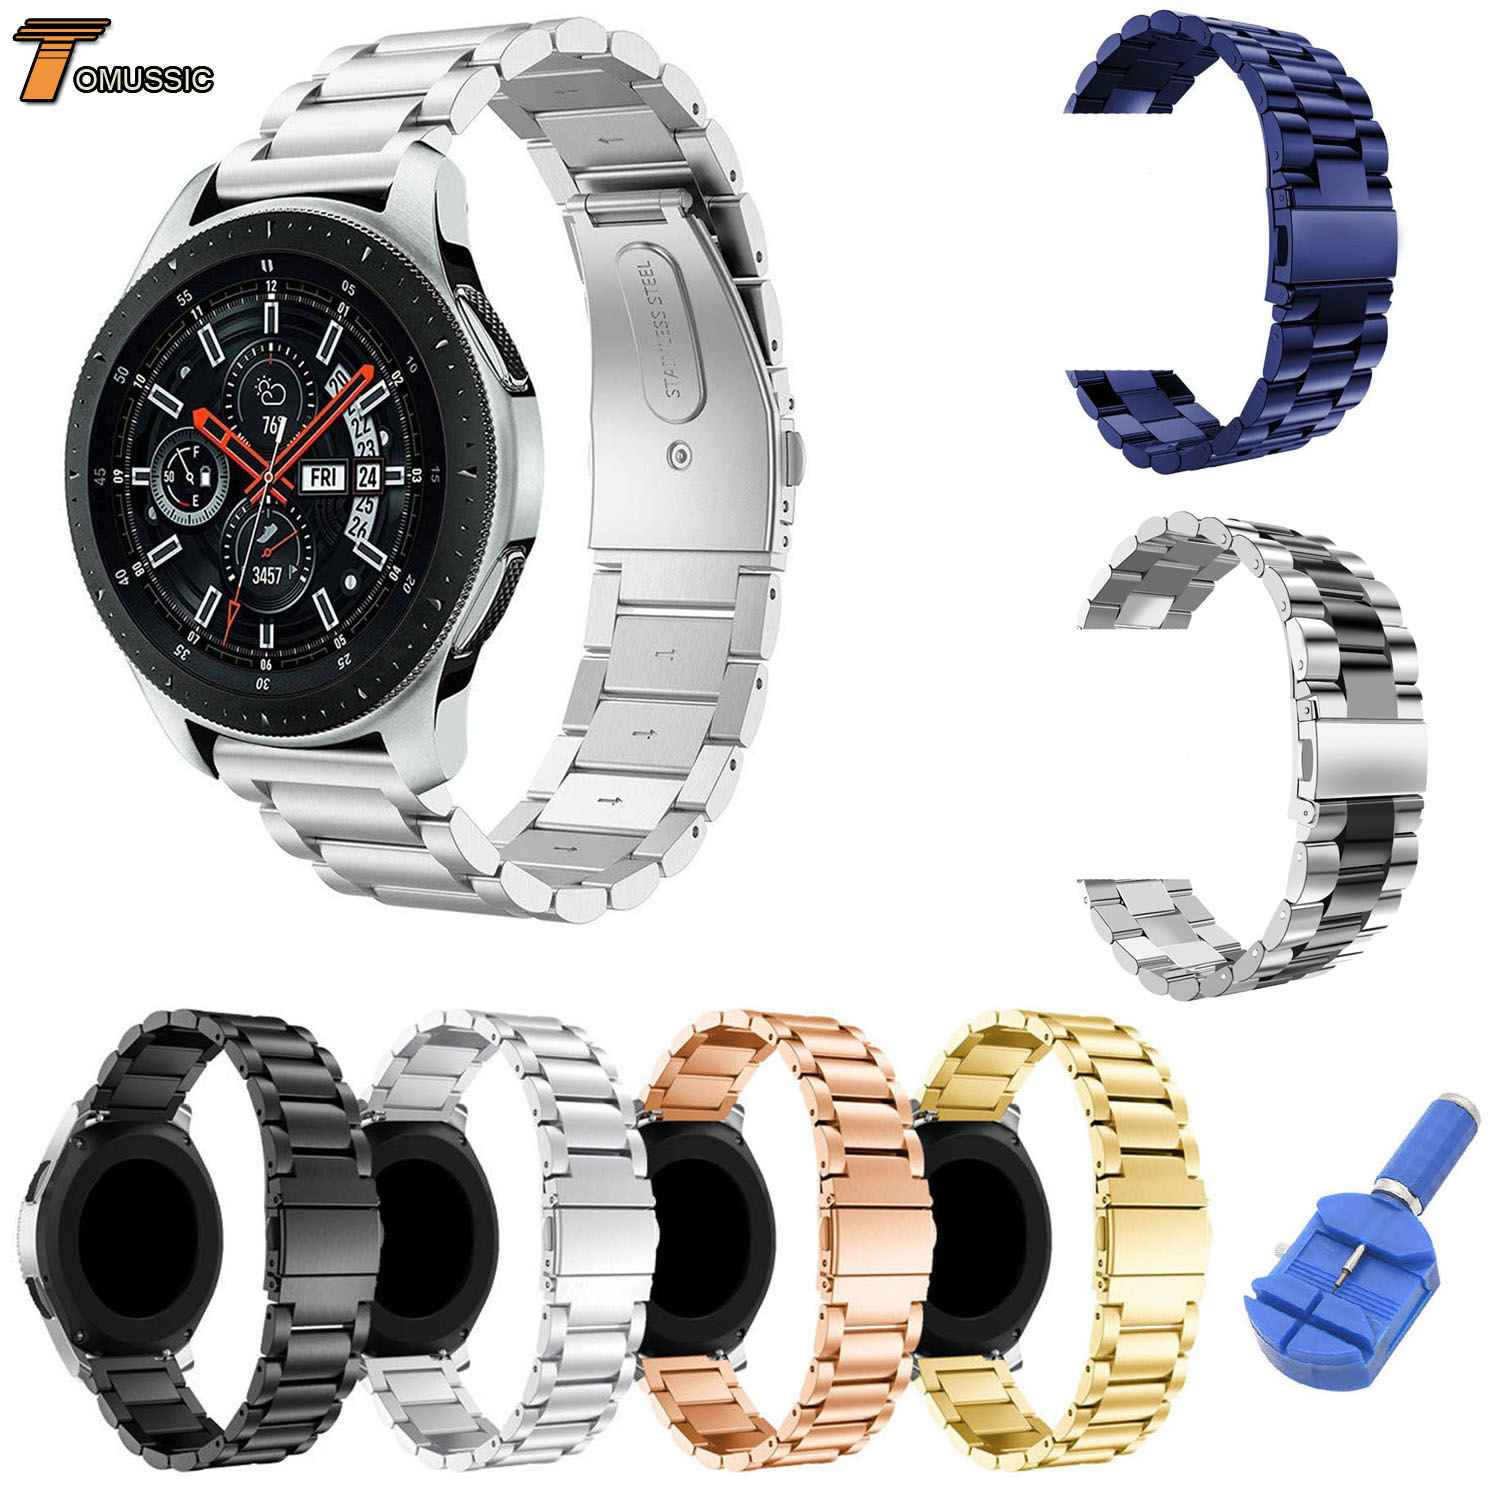 8 Colors Stainless Steel Watchband for Samsung Galaxy Watch 46mm SM R800 Sports Band Strap Wrist